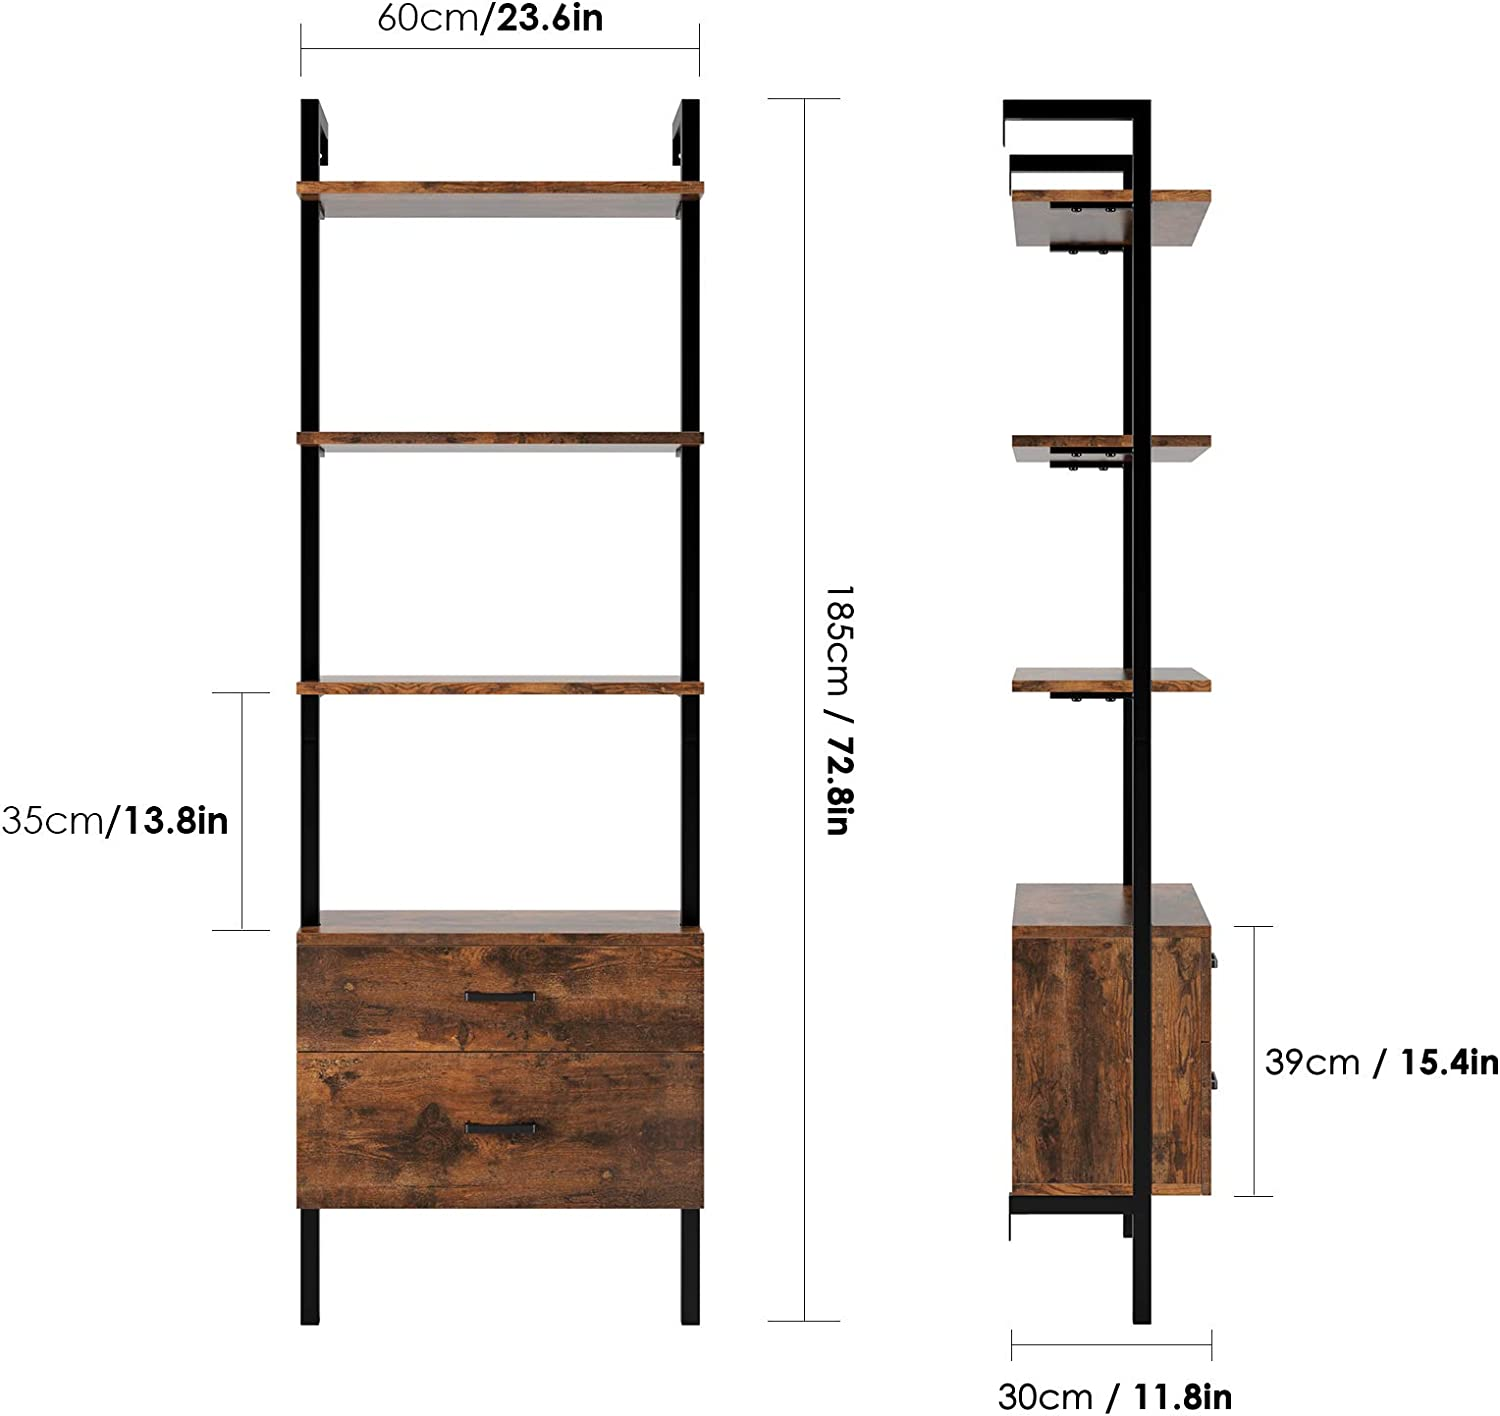 3-Tier Ladder Shelf Against The Wall Homfa Industrial Bookcase with 2 Drawers 72.8 Inches Display Storage Organizer Bookshelf Wood Look Accent Metal Frame Furniture Home Office